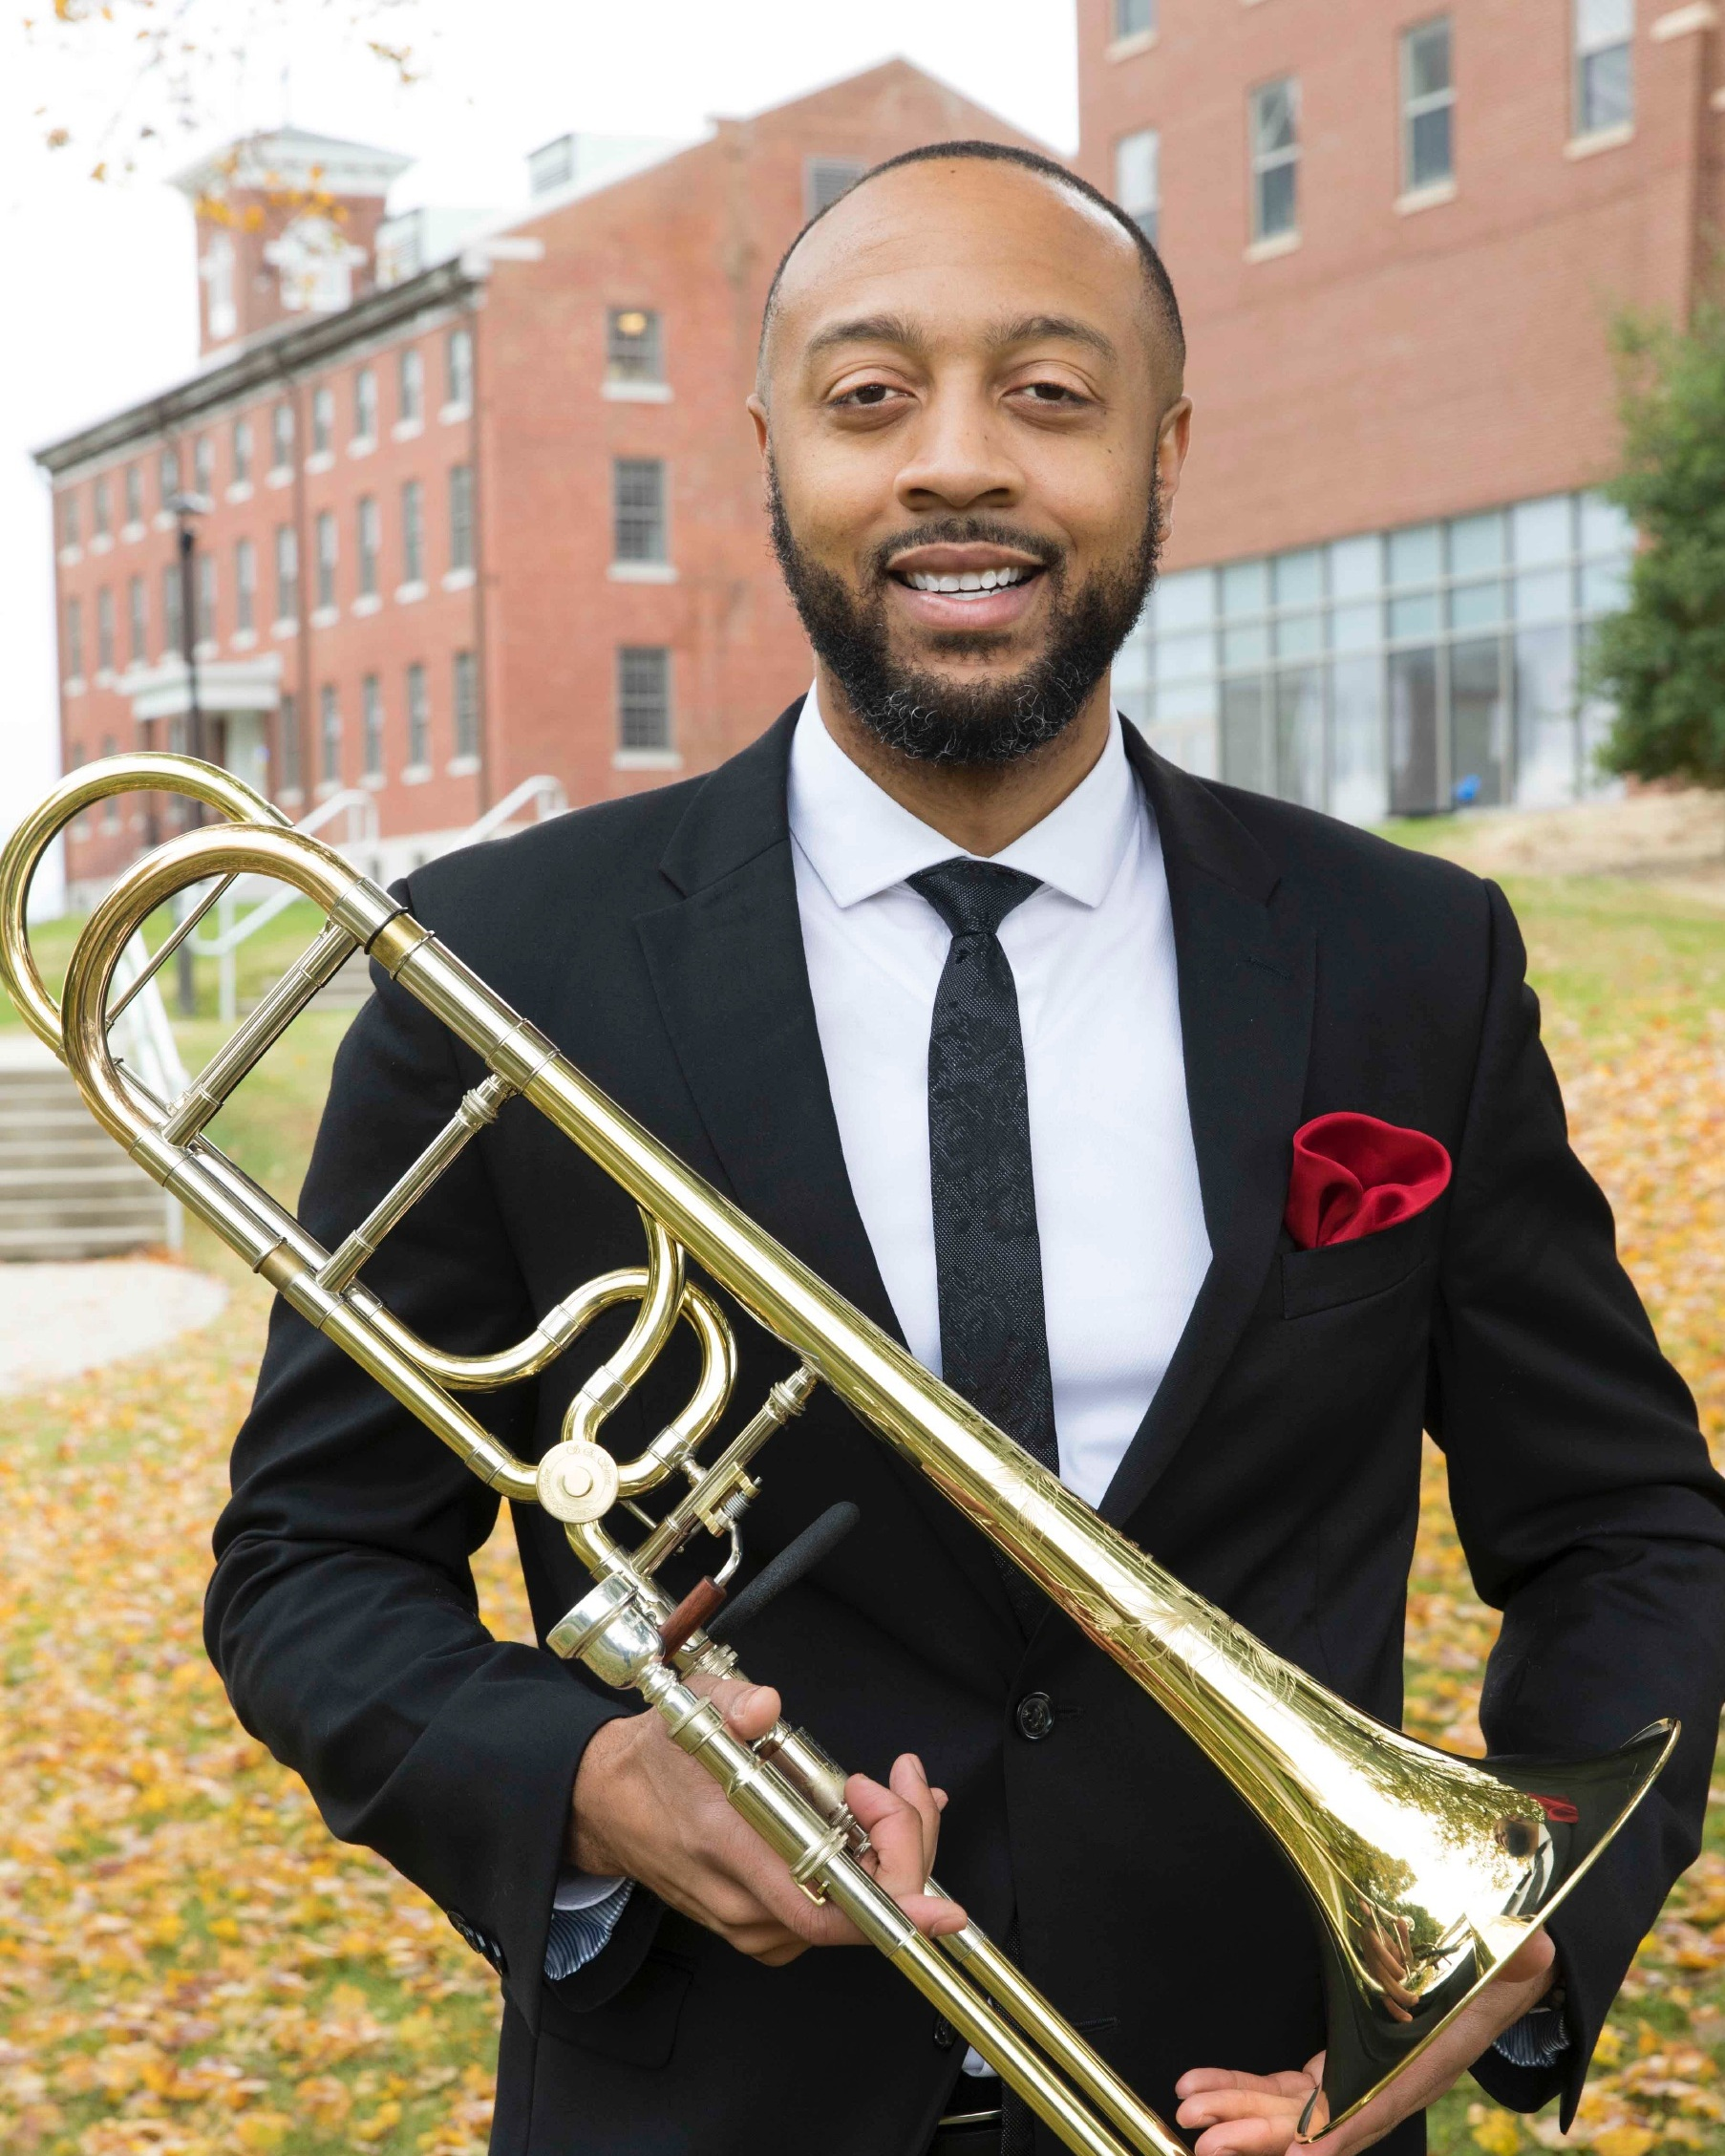 - WELCOME!! My name is Dr. Joseph Jefferson and I am the Assistant Professor of Trombone/Euphonium & Director of Jazz Studies here at Southeast. If you are a trombonist or euphonium player with a passion for music looking to pursue a degree in music, please contact me at jjefferson@semo.edu. I look forward to connecting with you!GO Redhawks!Click here to find out more about the music department at Southeast Missouri State University!